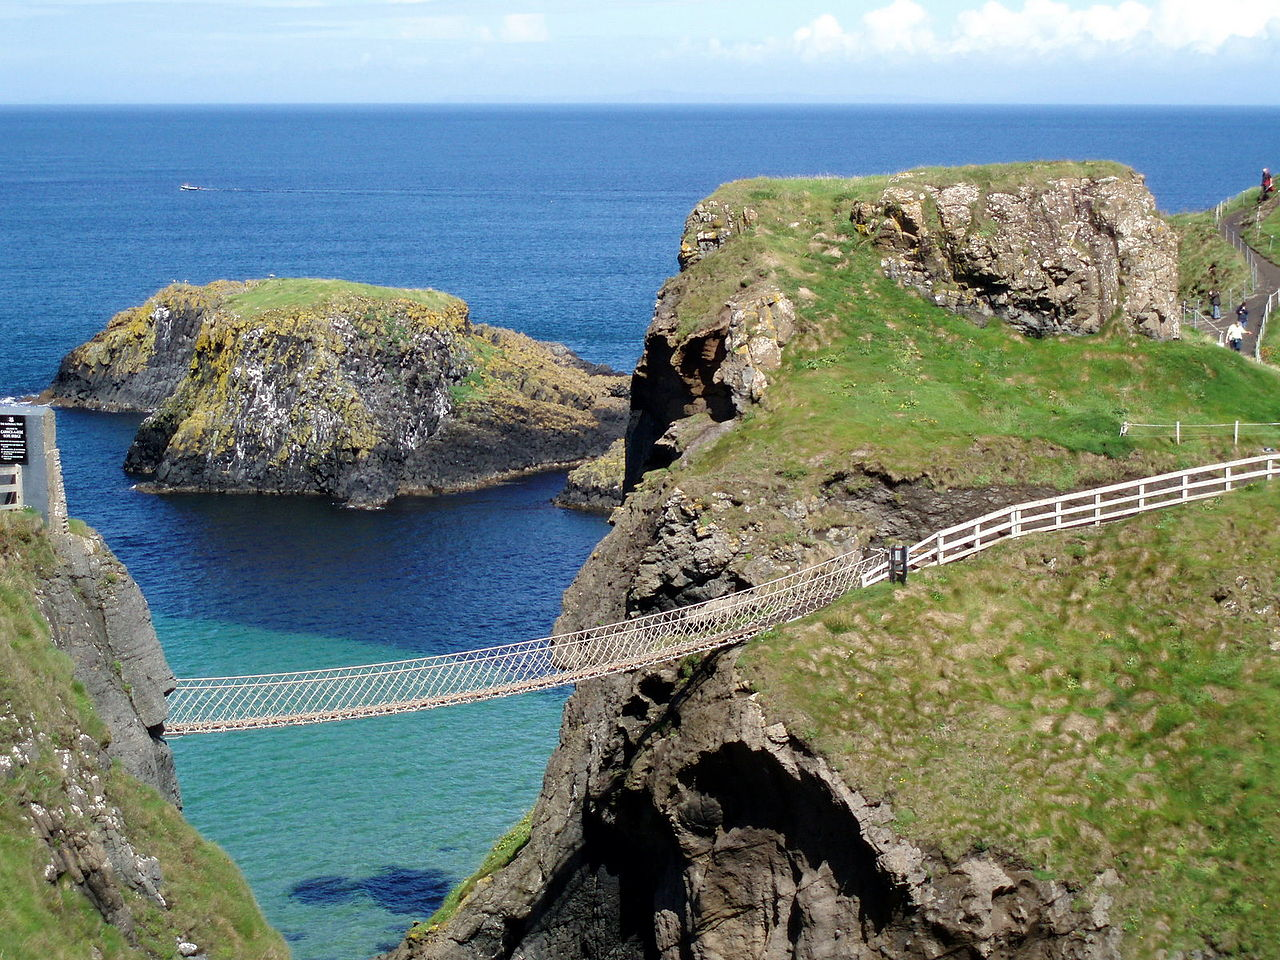 The Rope Bridge at Carrick-A-Rede | © Shriaz Chakera / Wikicommons